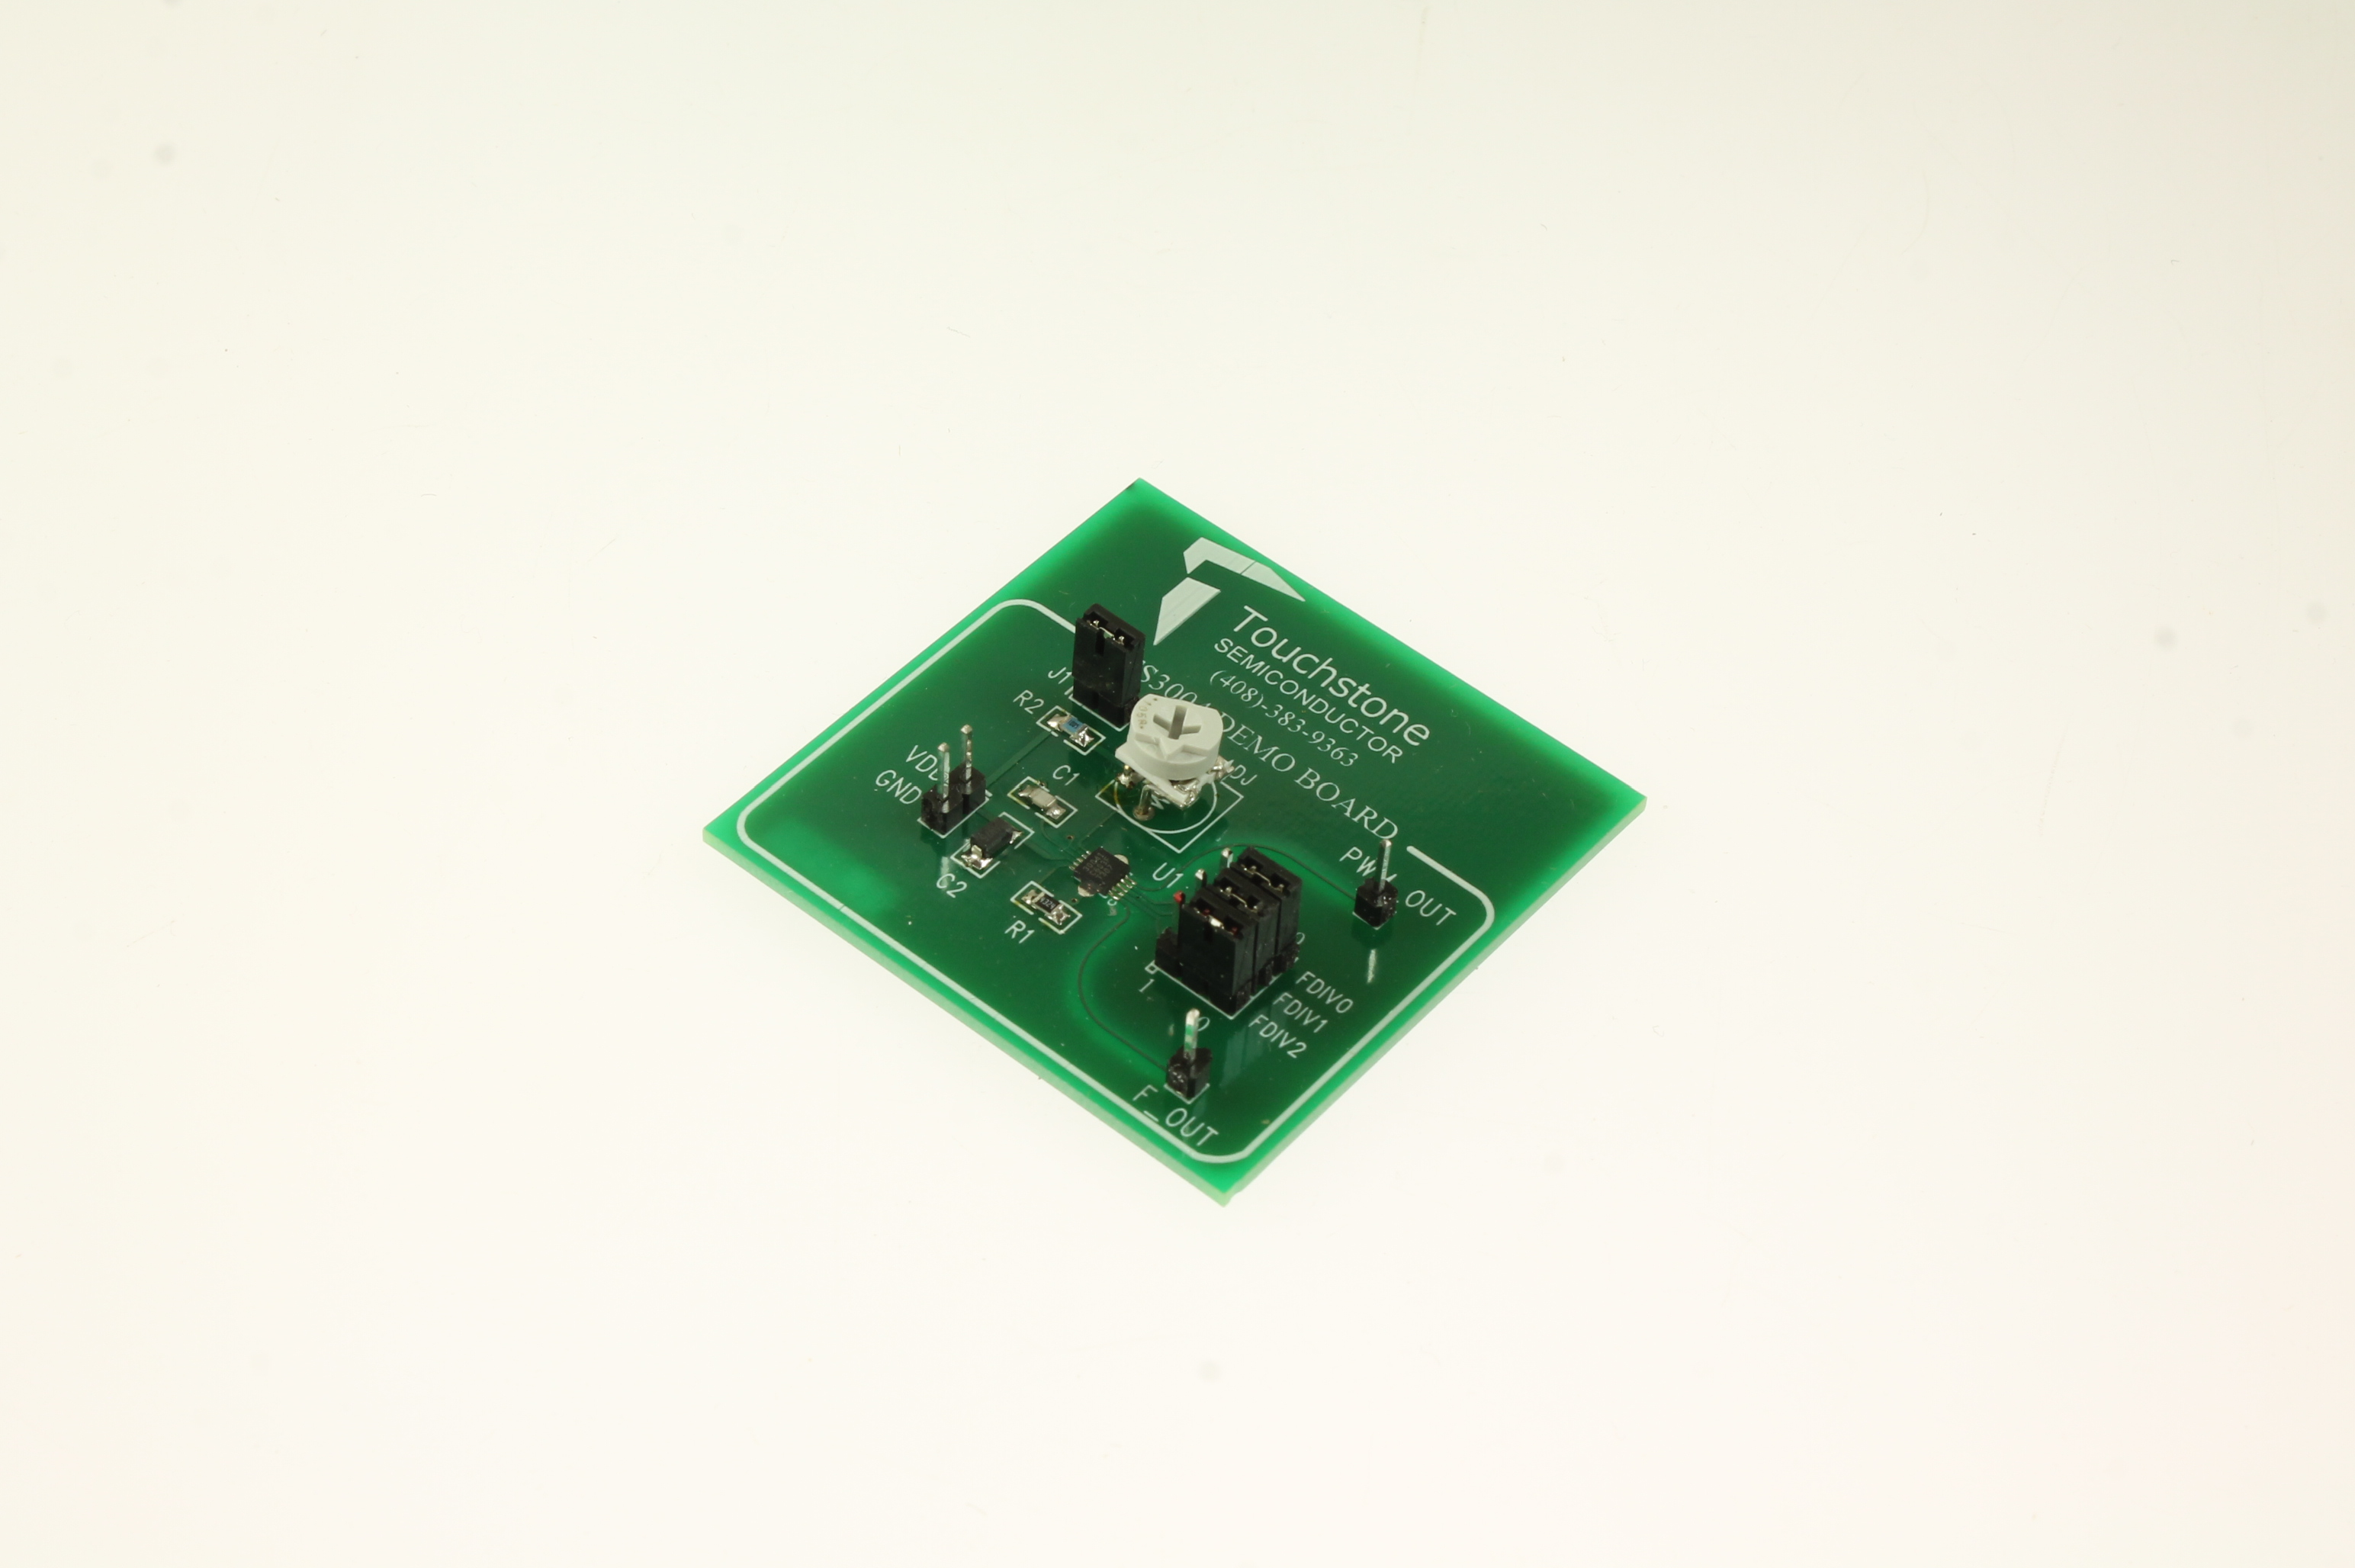 Ts3004db Silicon Labs Development Kit 2098001370 Circuit Board Picture Of